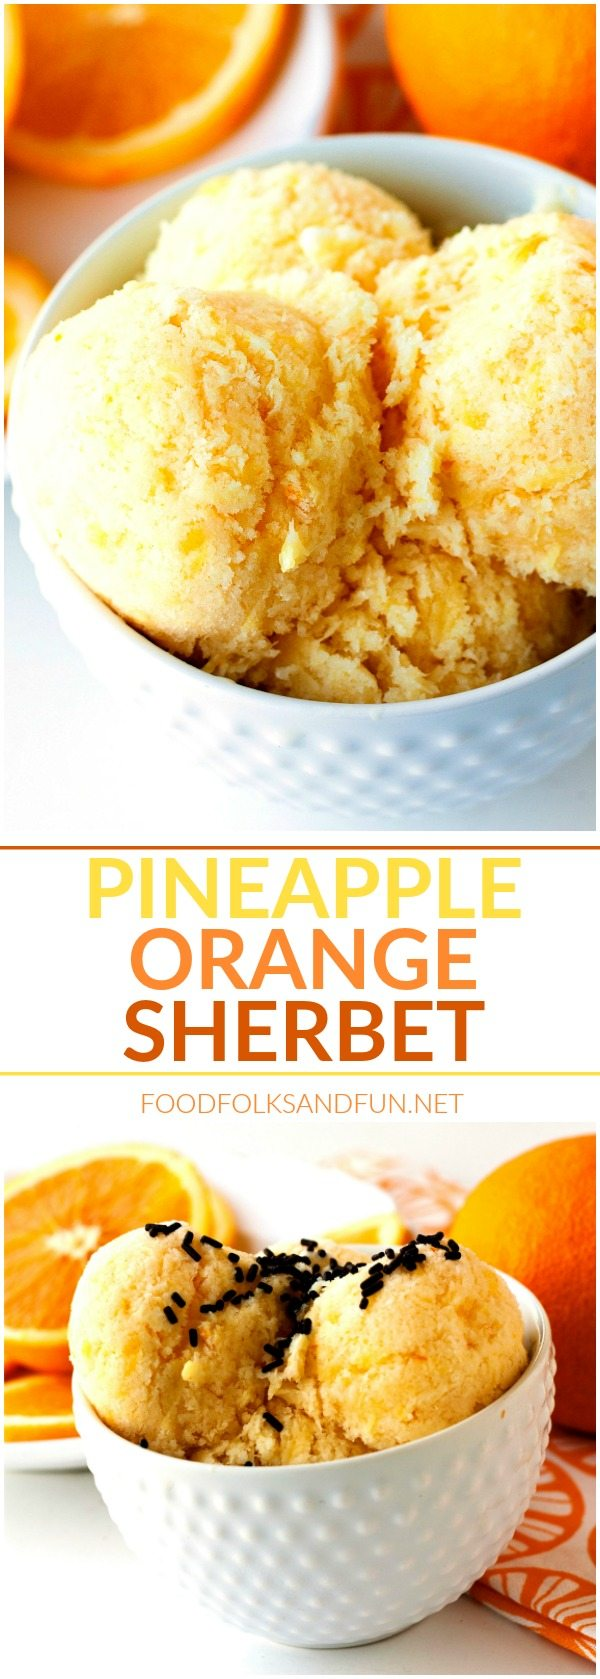 This Pineapple Orange Sherbet recipe is simple to make and so refreshing. It's just the thing to make when the weather starts to warm up!